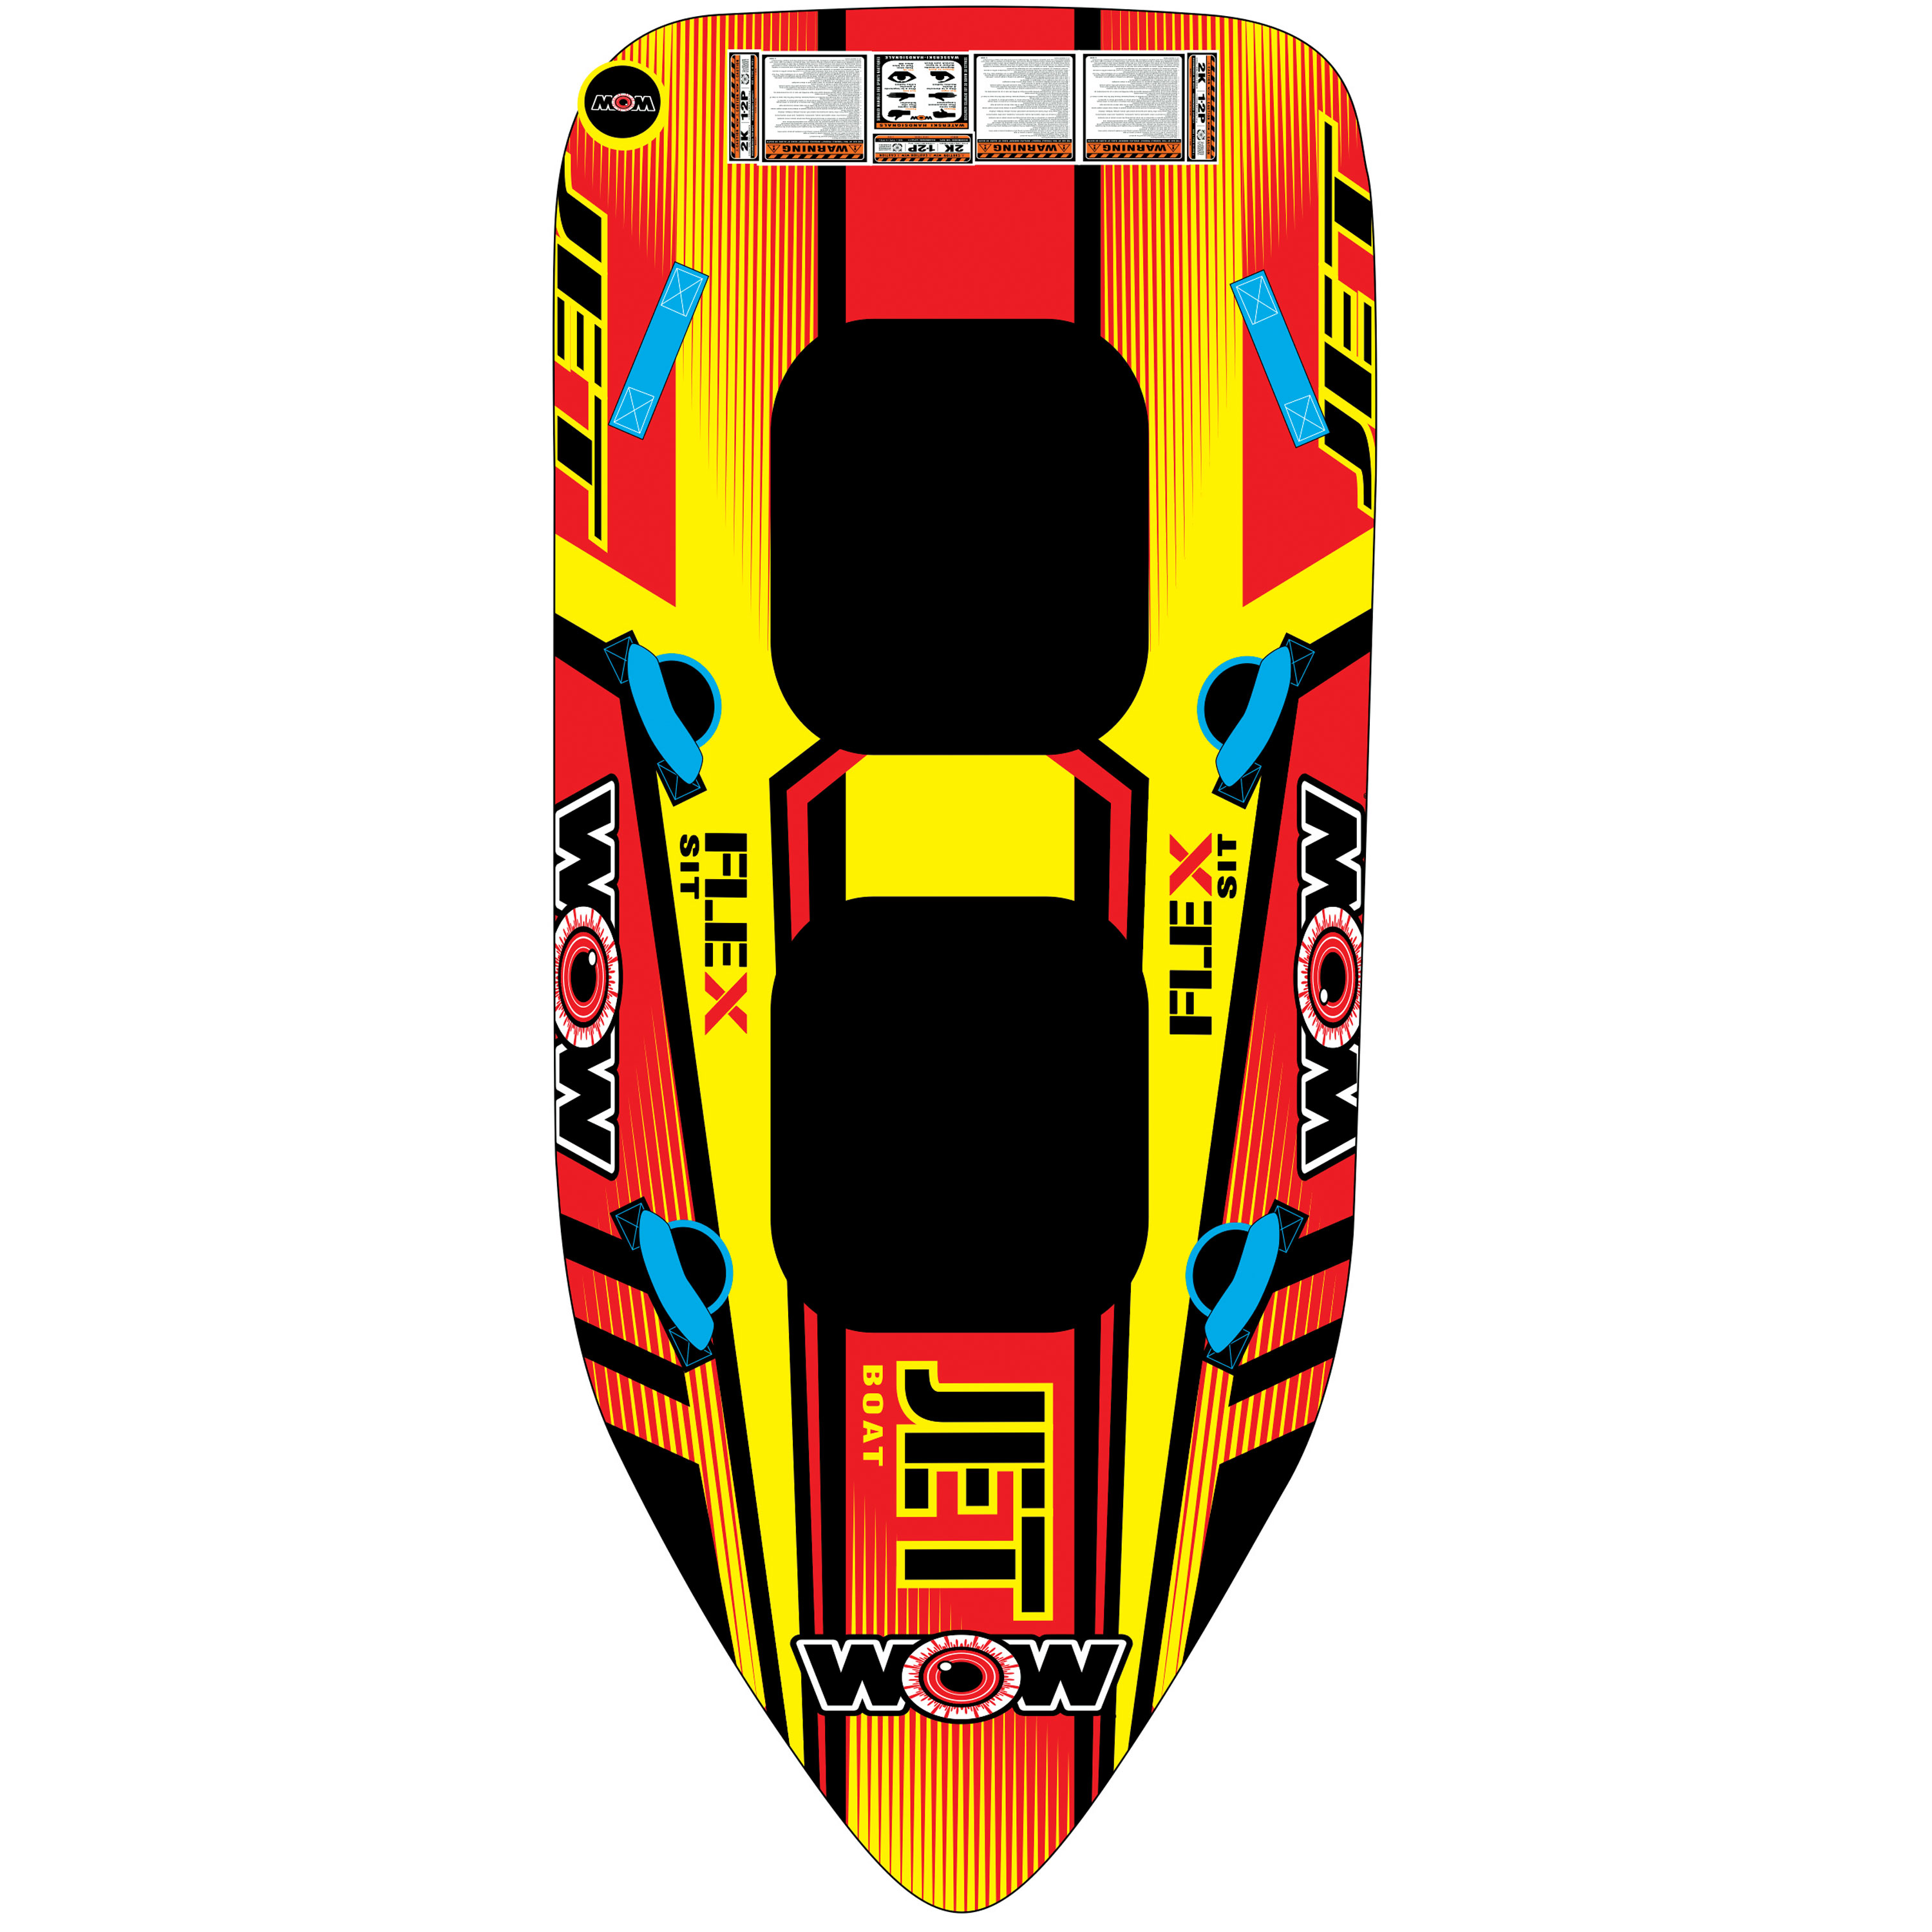 Wow 17-1020 Towable Wow Jet Boat 1-2 Person